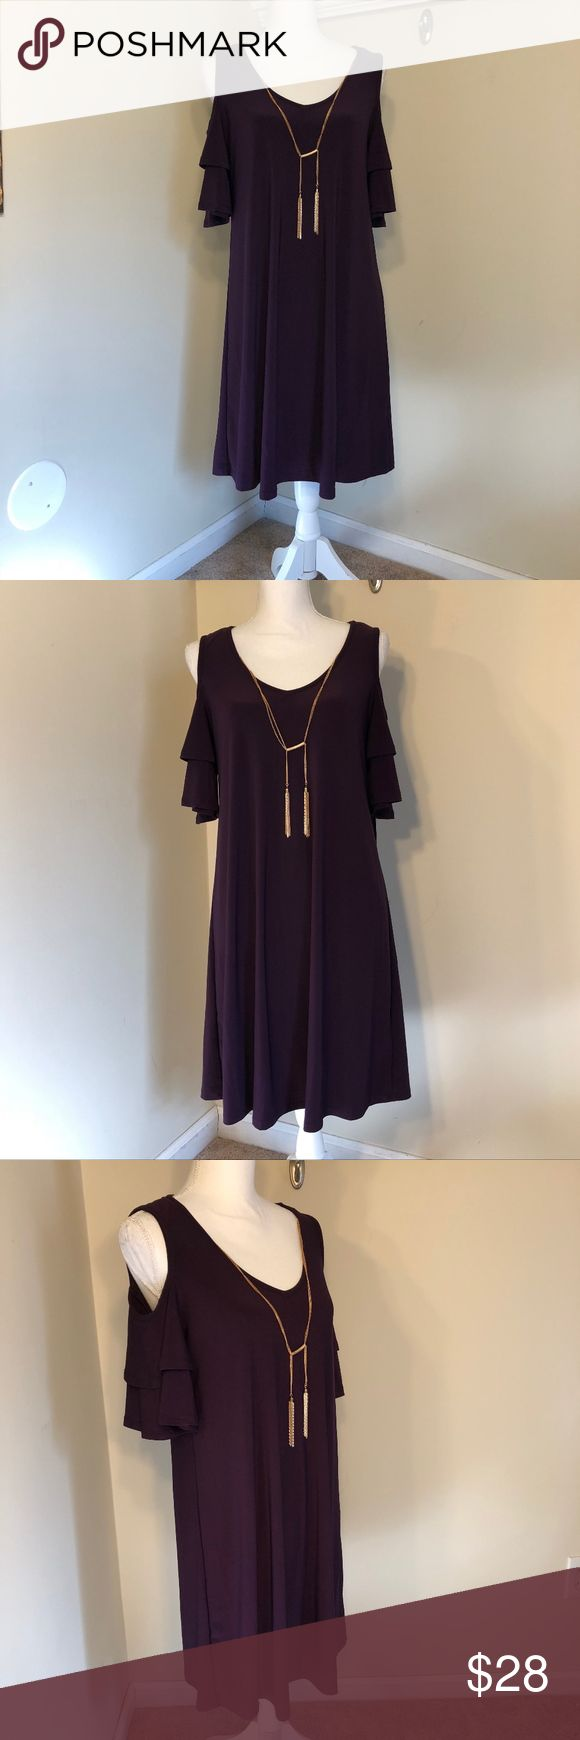 Luxology NWT Could Shoulder Swing Dress Purple, grape hued, a-line, loose fitting, cold shoulder, layered sleeve, midi/mini swing dress. Dress features a built in detachable gold toned necklace. NWT No rips, stains or pulls. Measurements are 35.5 inches from shoulder to hem, 17.5 inches across the chest, 18 inches across the waist, and an 11.5 inch sleeve (Sleeve length is approximate) (Item GHM017) Luxology Dresses